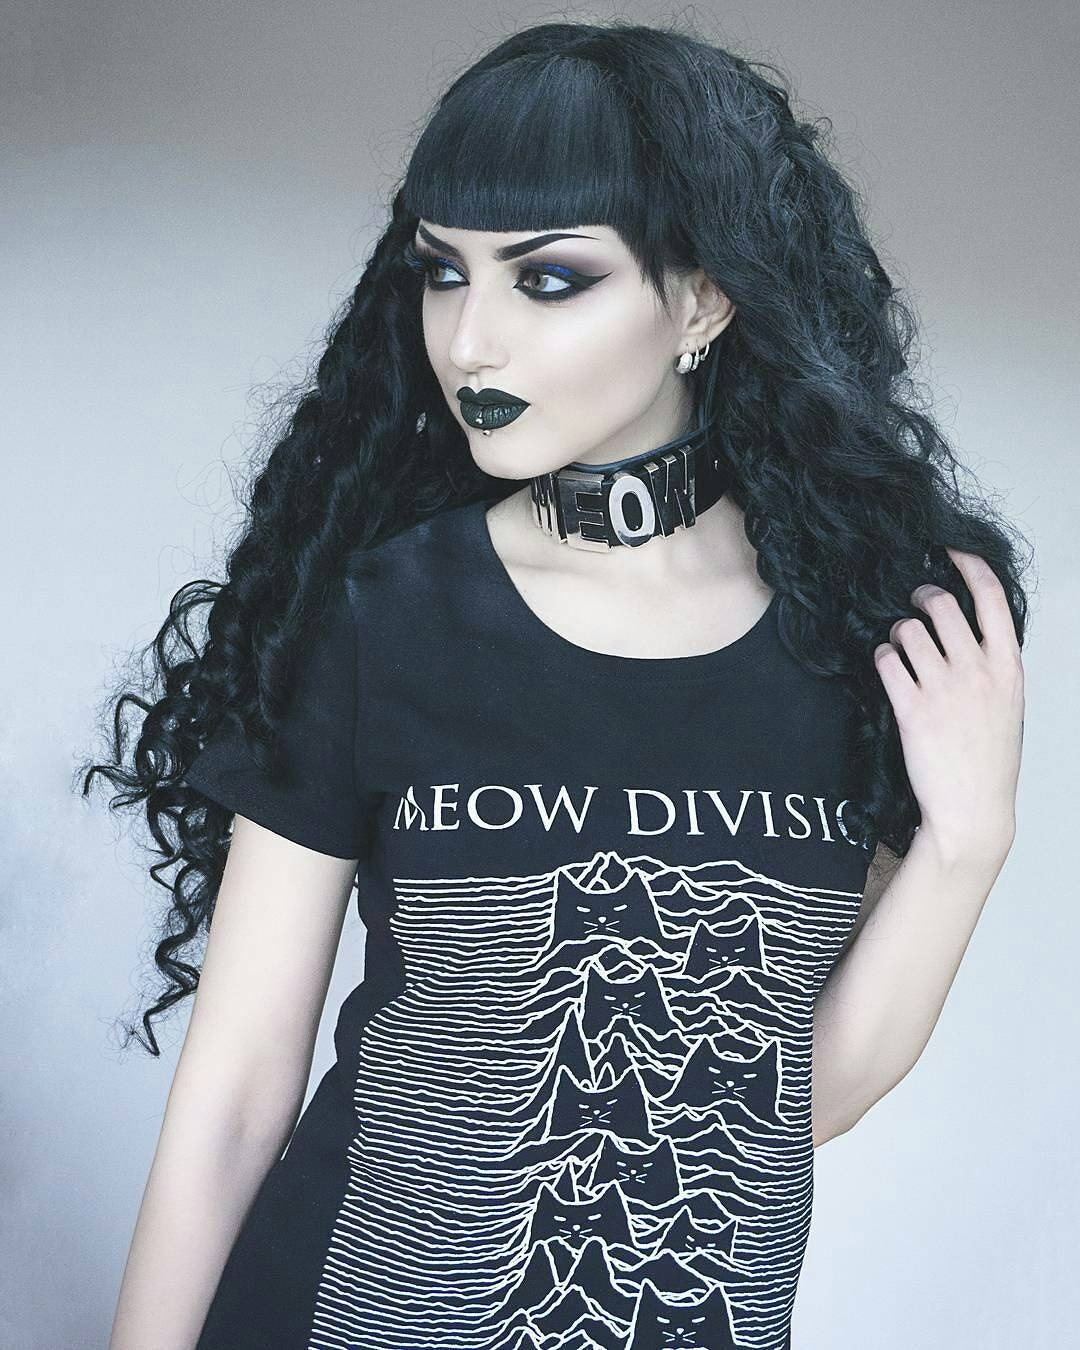 Fashionshow-JF Summer Meow Division Unknown Pleasure Women T-Shirt Cotton High Quality Short Sleeve O-Neck Tops Tee